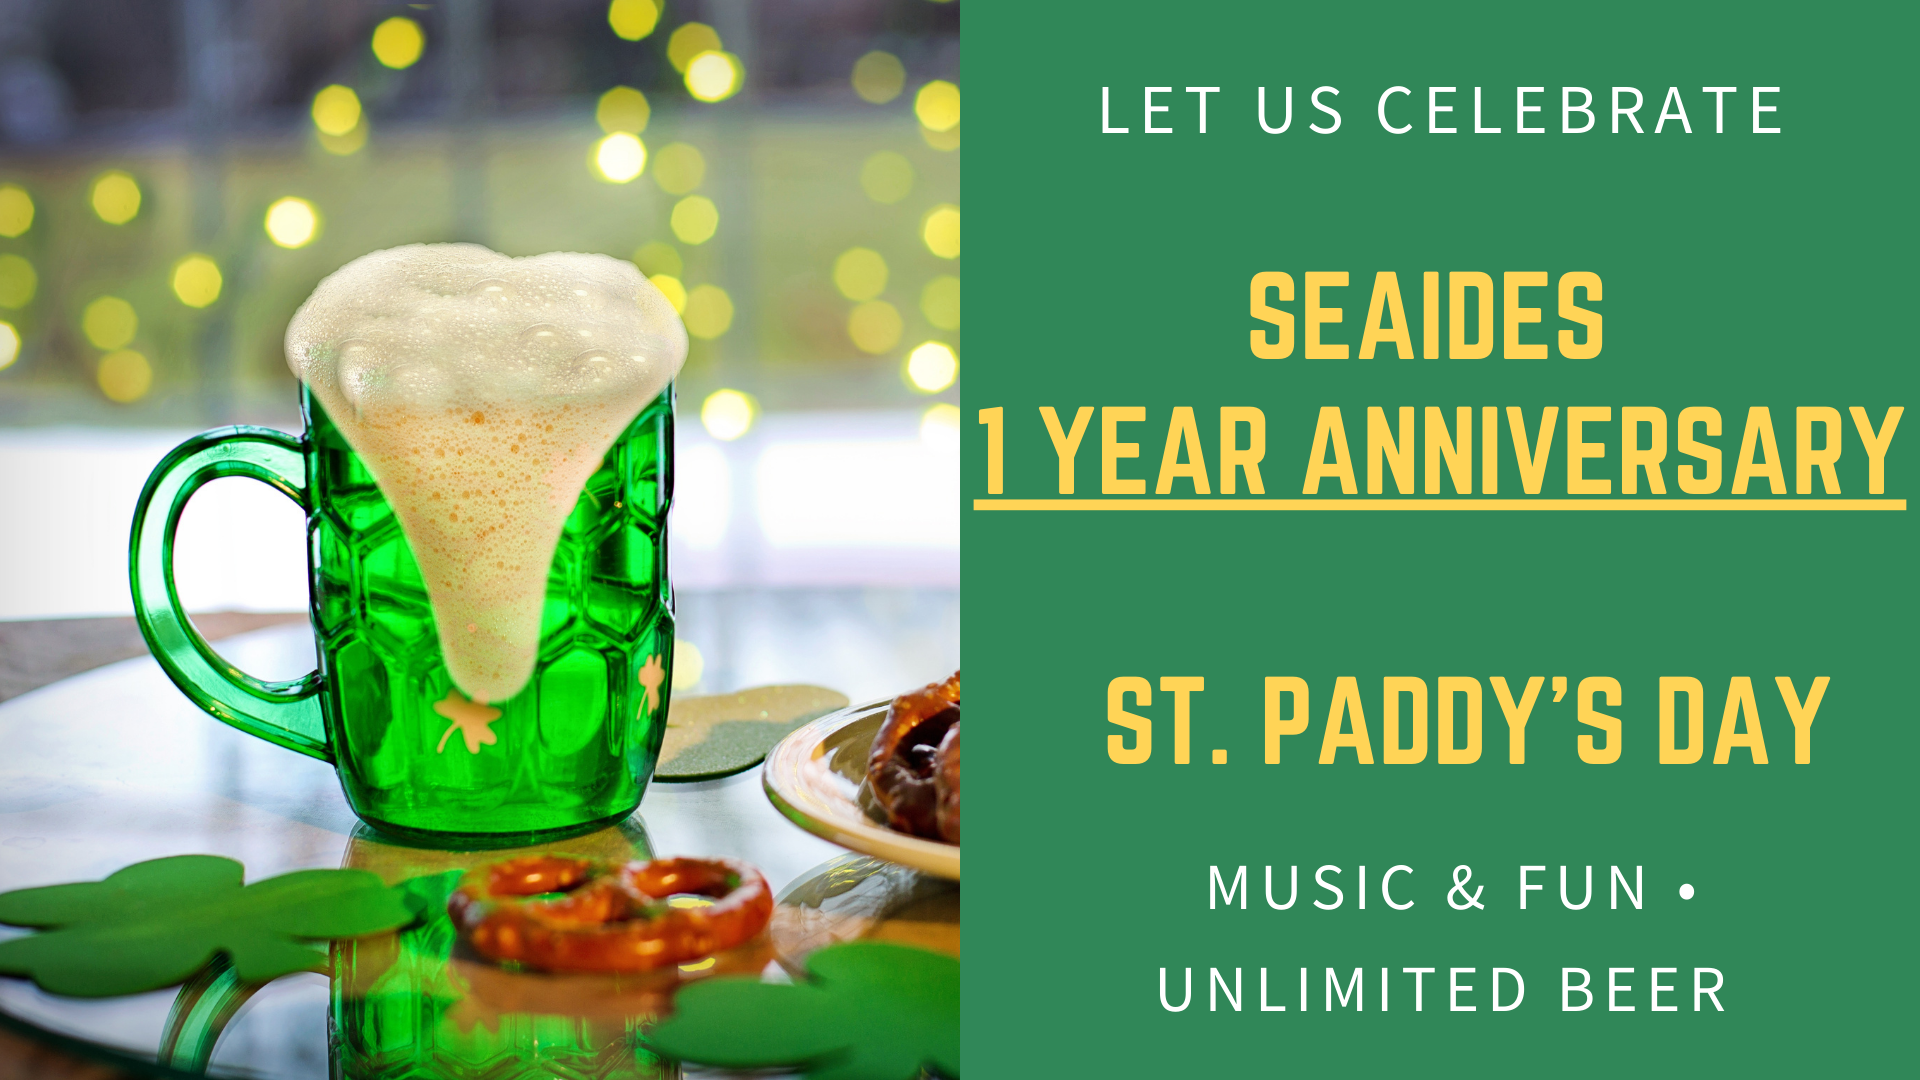 one year anniversary and St Paddys Day celebration